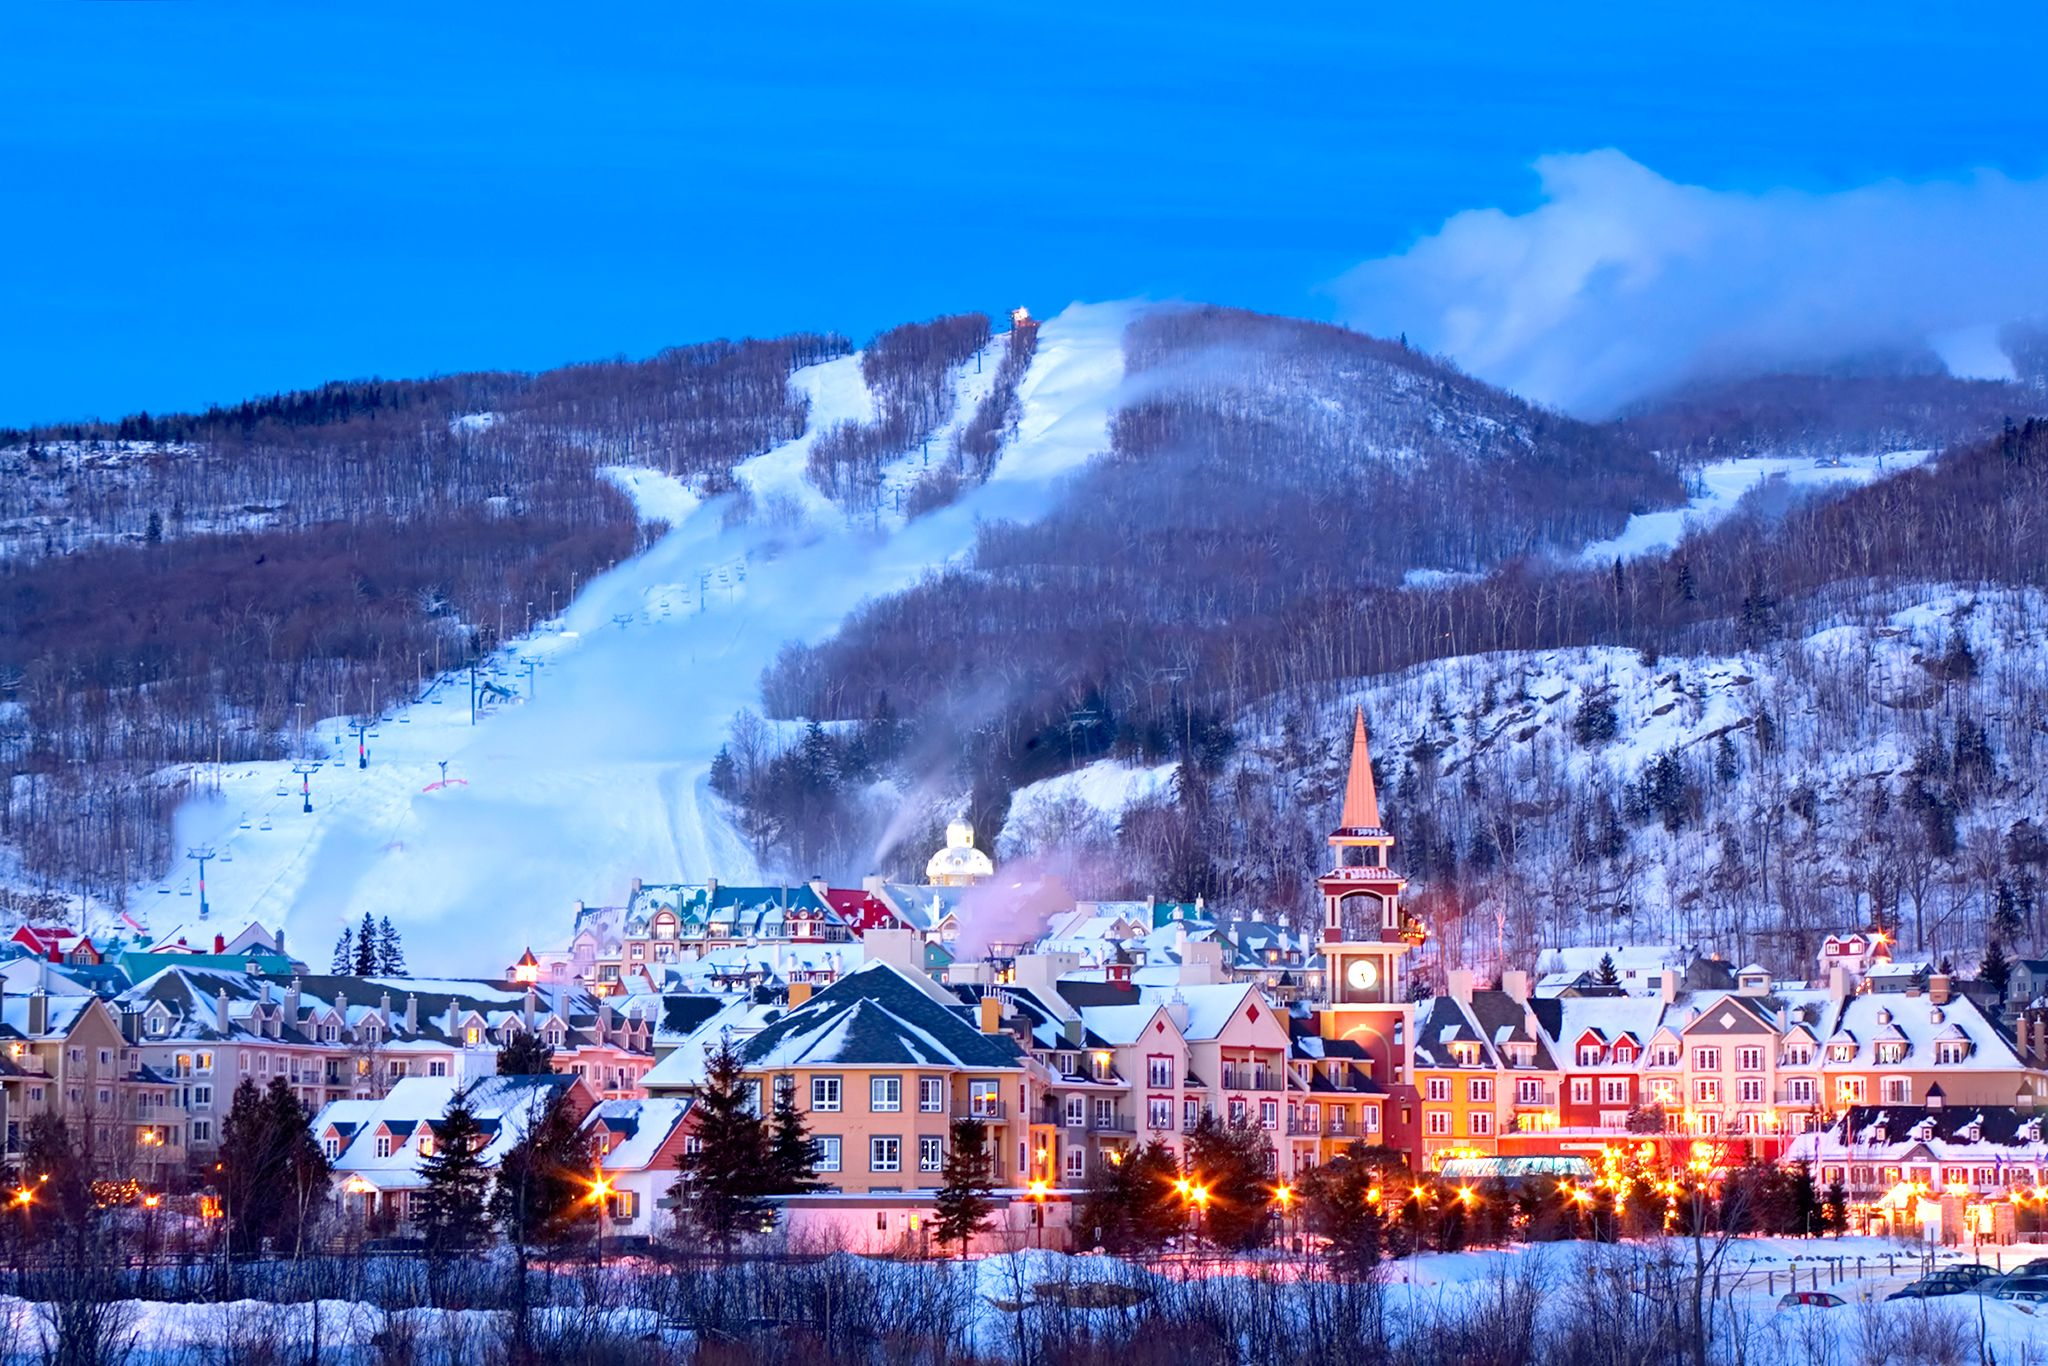 Canada Ski Resorts Map Near Montreal A Quebec Road Trip: The Scenic Loop Between Montreal and Quebec